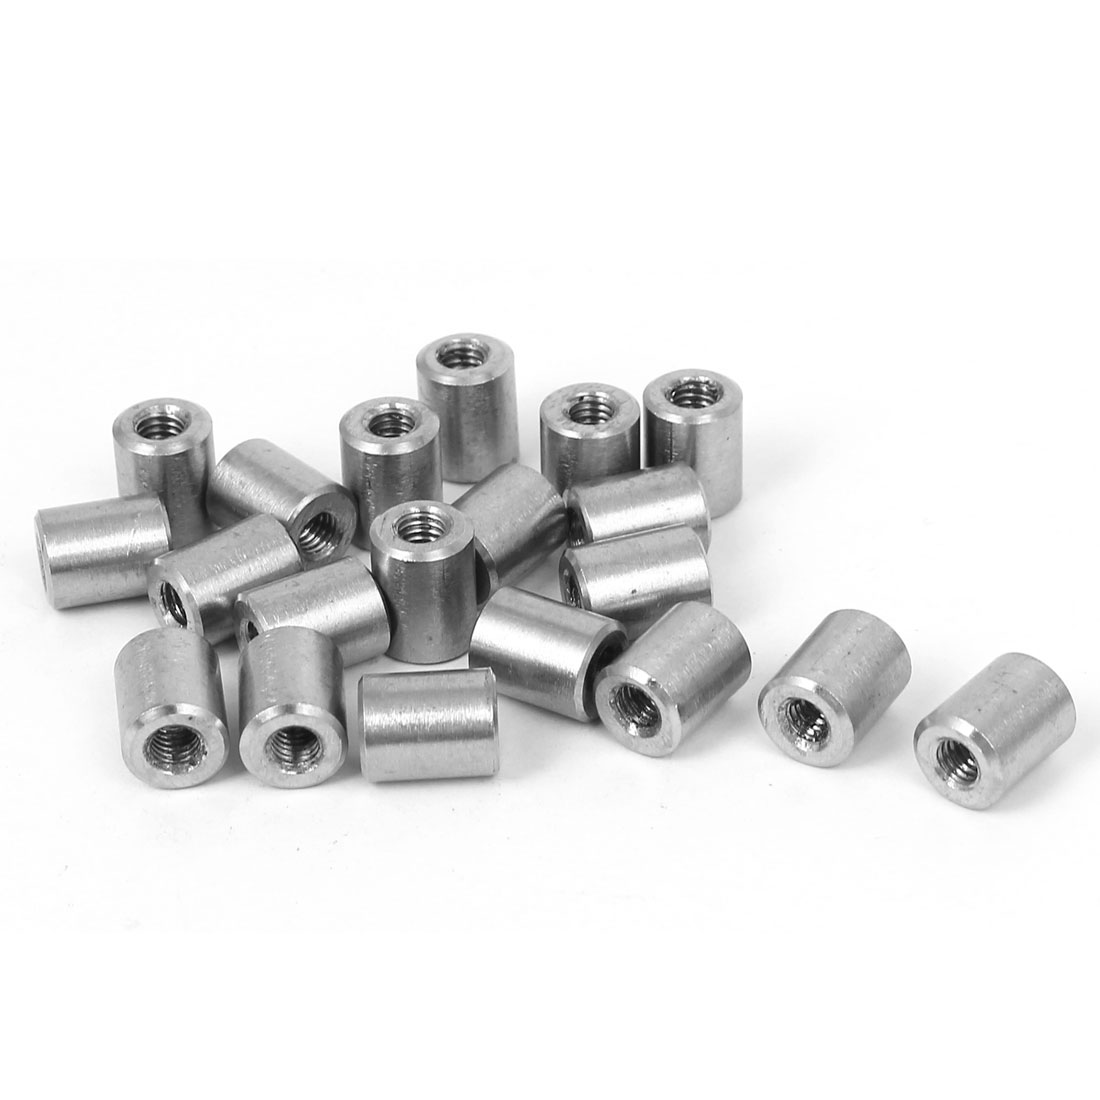 M4x10mmx8mm Threaded Rod Tube Adapter Round Coupling Connector Nuts 20pcs